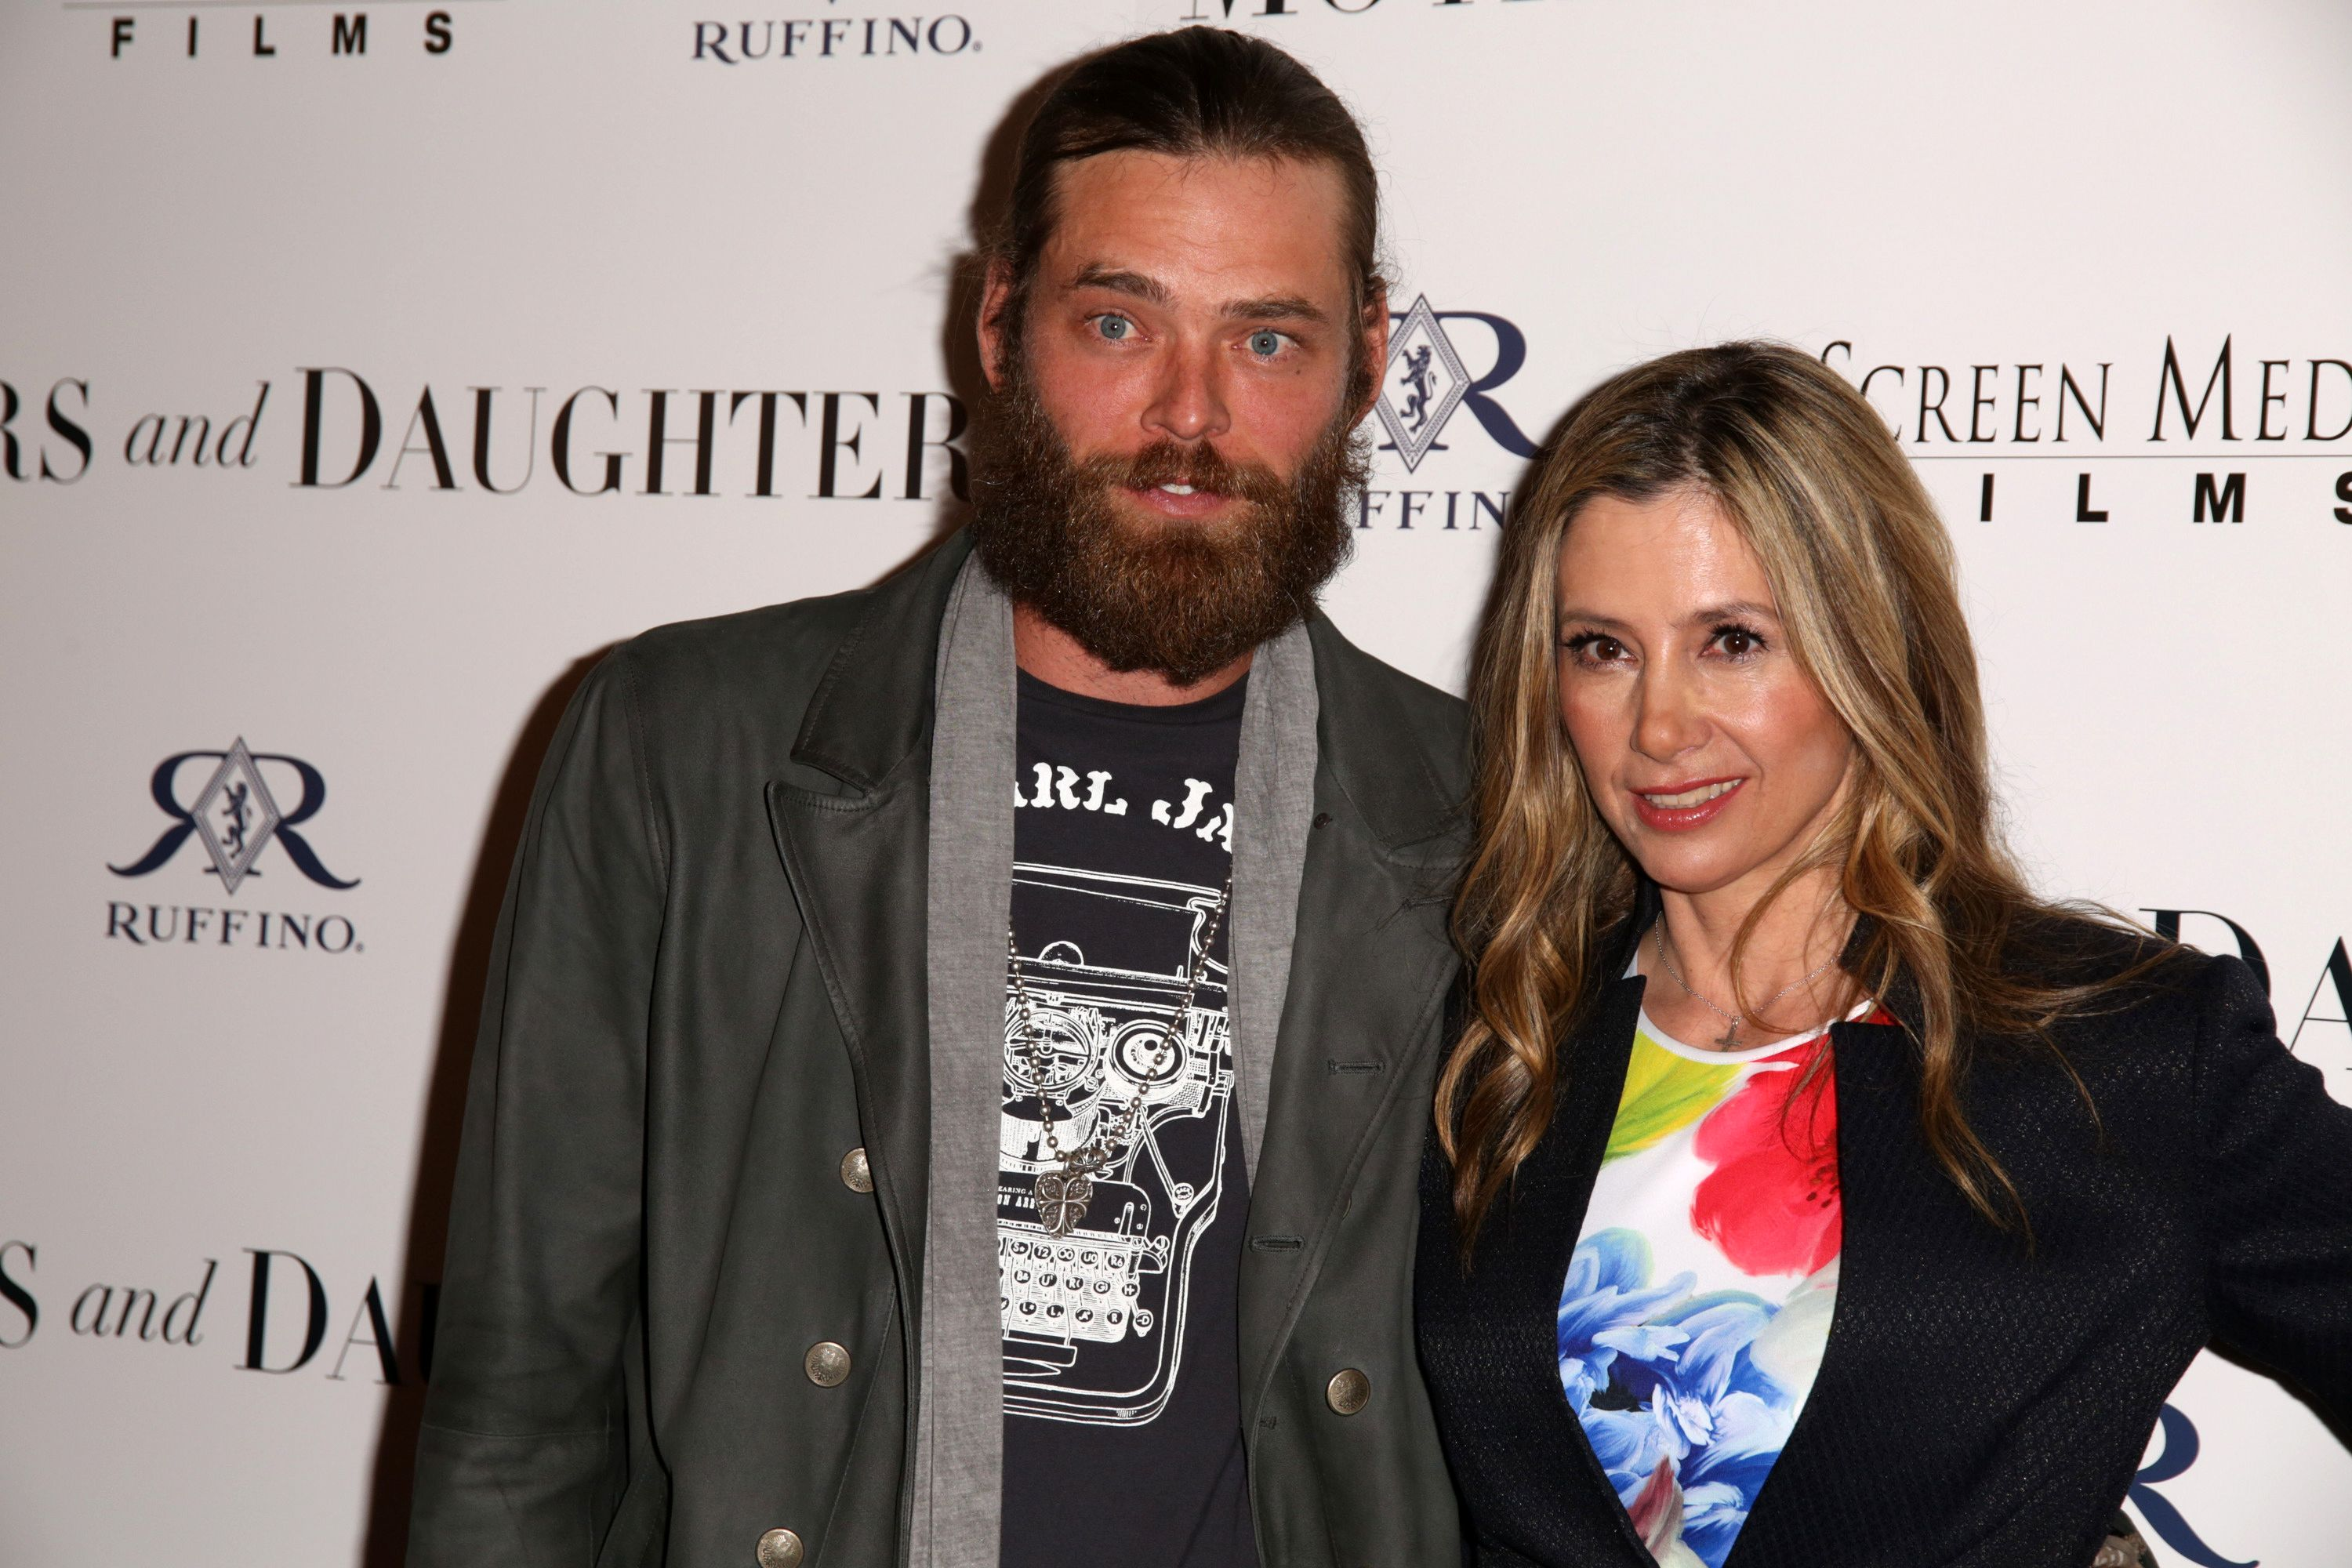 Christopher Backus and  Mira Sorvino attend the premiere of 'Mothers and Daughters' at The London on April 28, 2016 in West Hollywood, California.